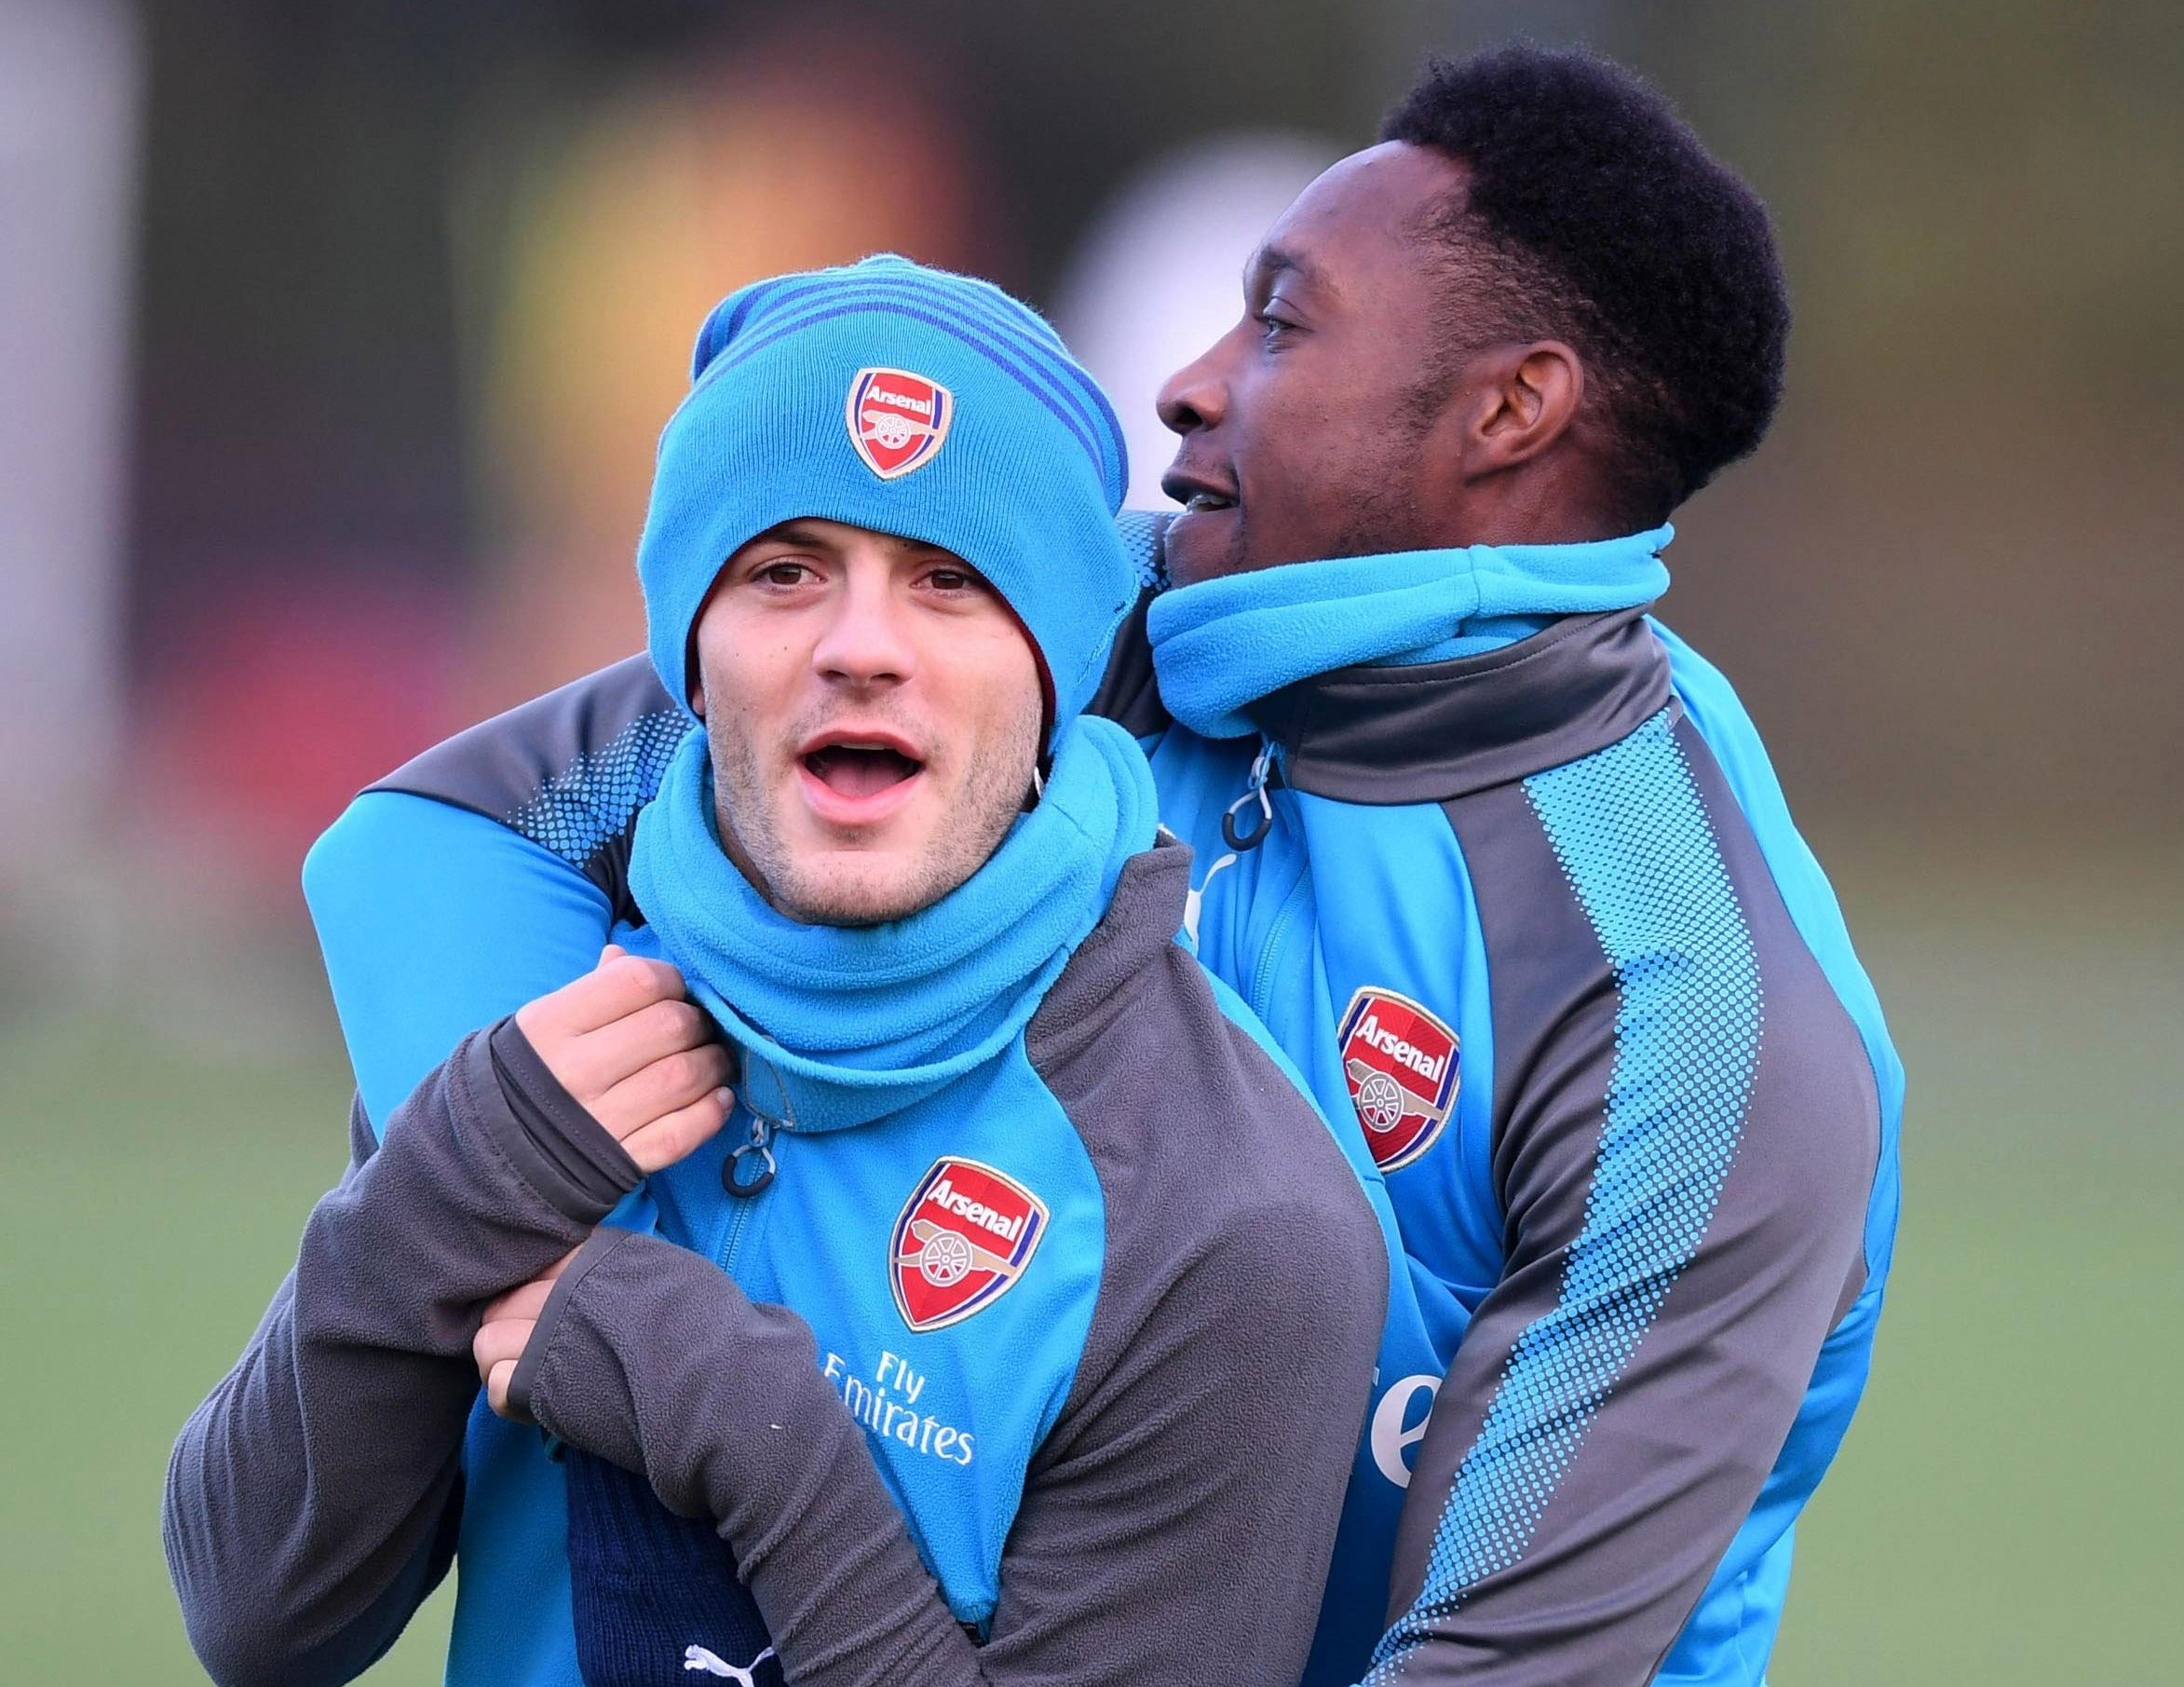 Danny Welbeck is backing Jack Wilshere to be a hit at his next club